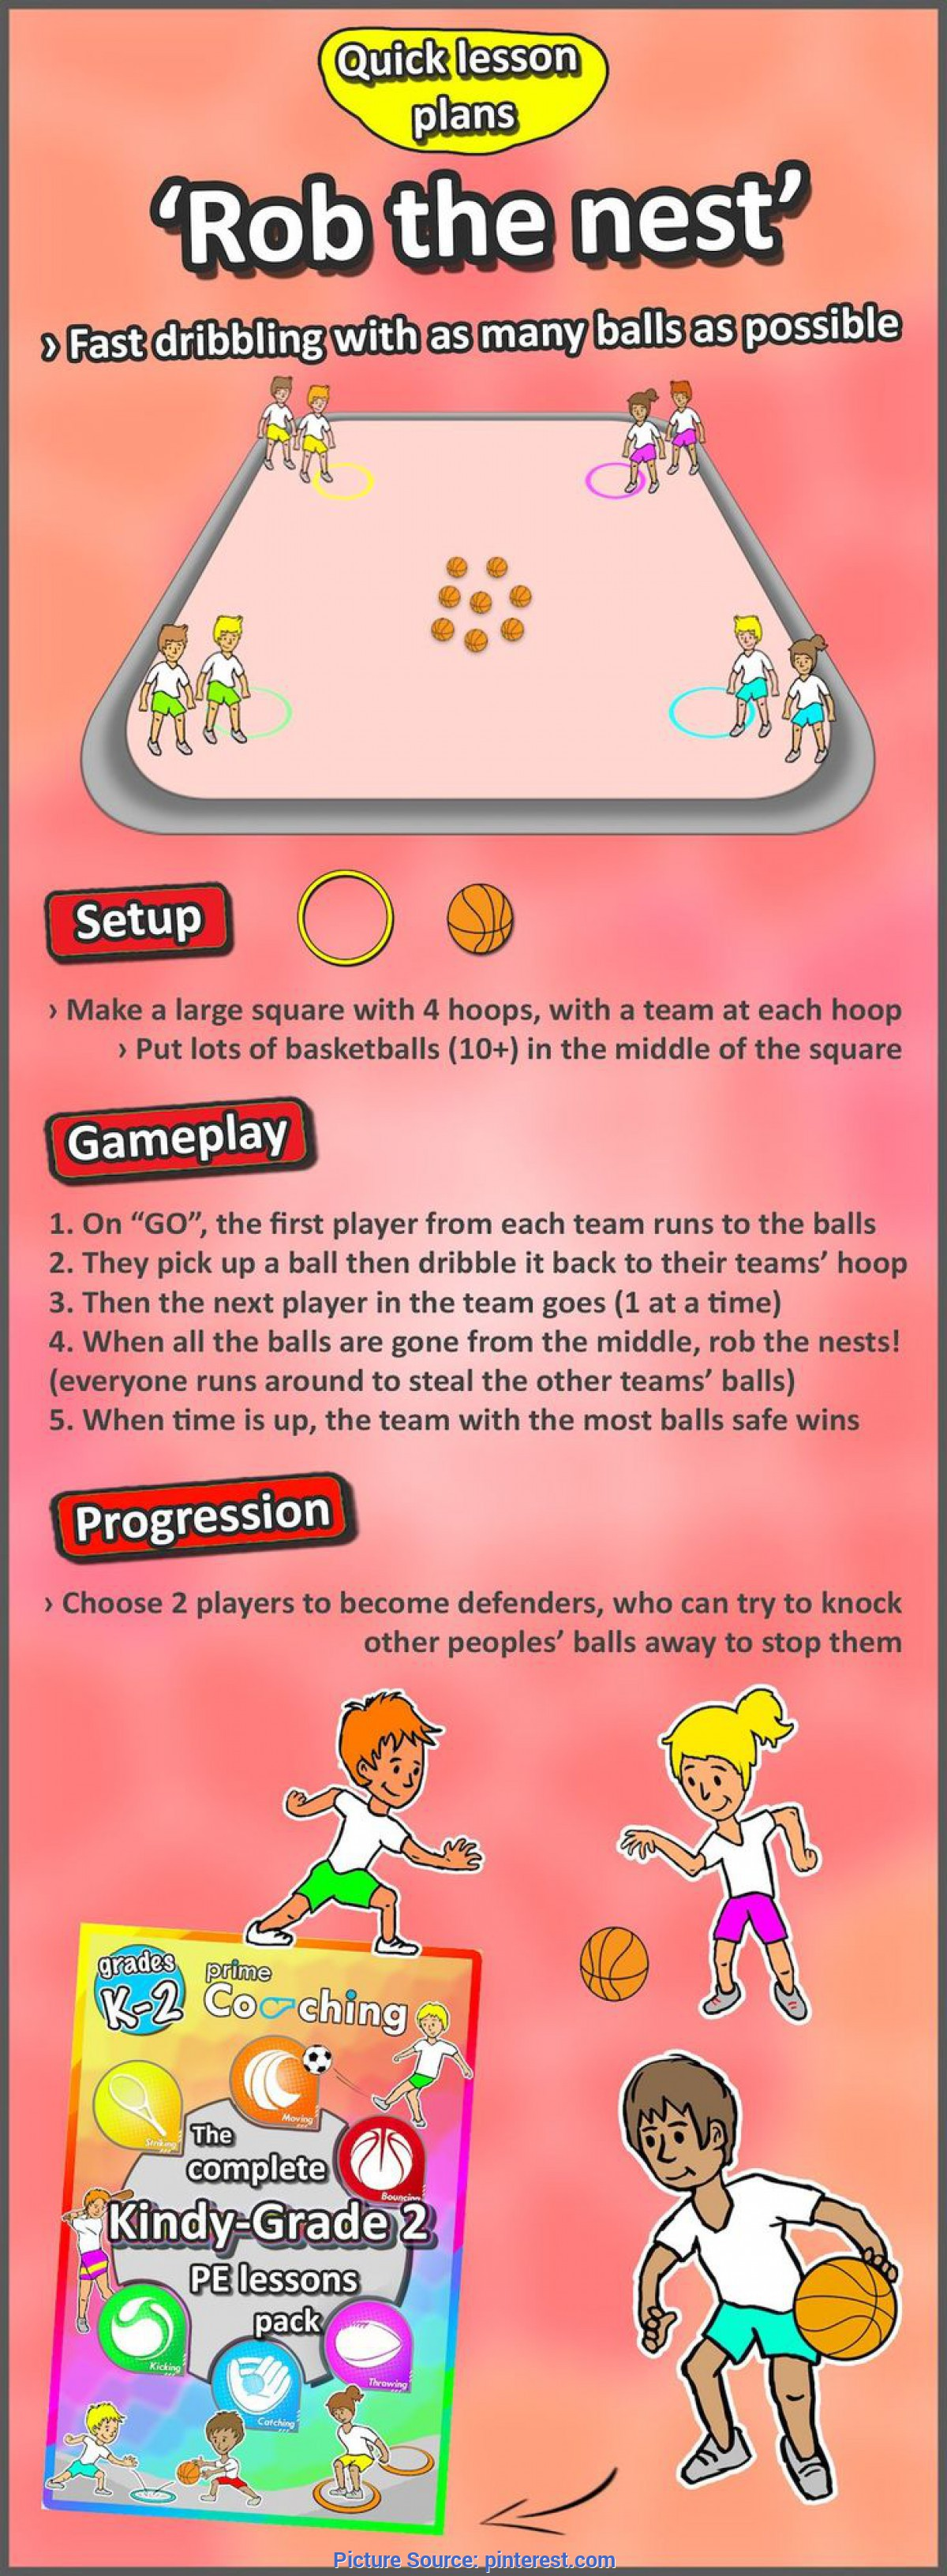 Great 2Nd Grade Lesson Plans For Physical Education Best 25+ Kids Gym Games Ideas On Pinterest | Gym Games, Physica